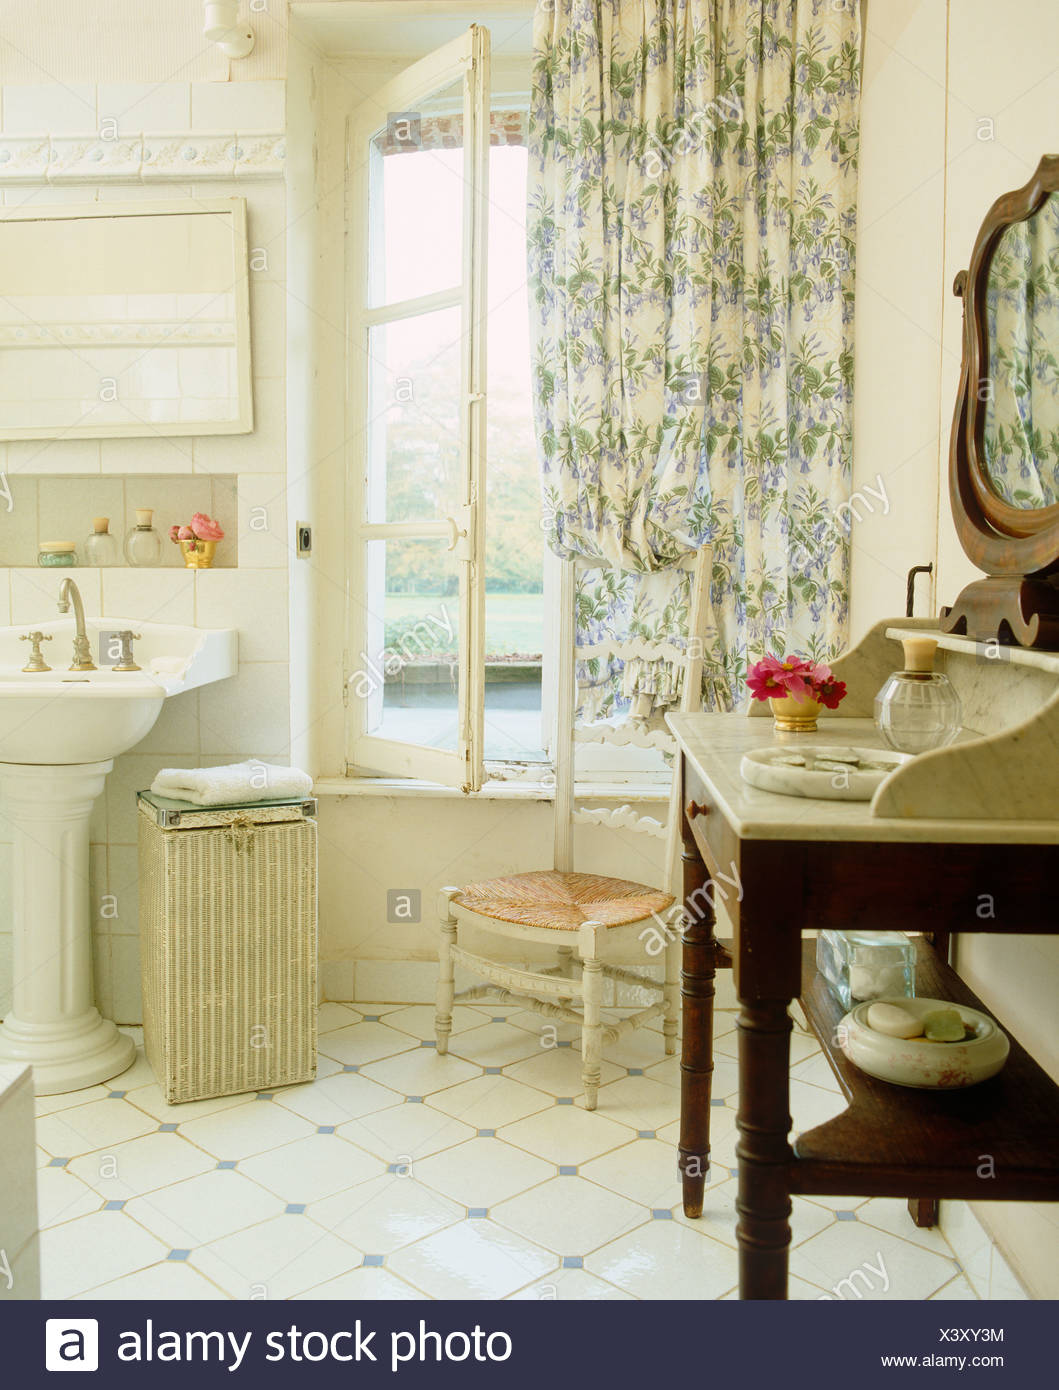 Marble Topped Washstand And White Tiled Floor In French Country Bathroom With Blue Floral Curtains And Pedestal Washbasin Stock Photo Alamy